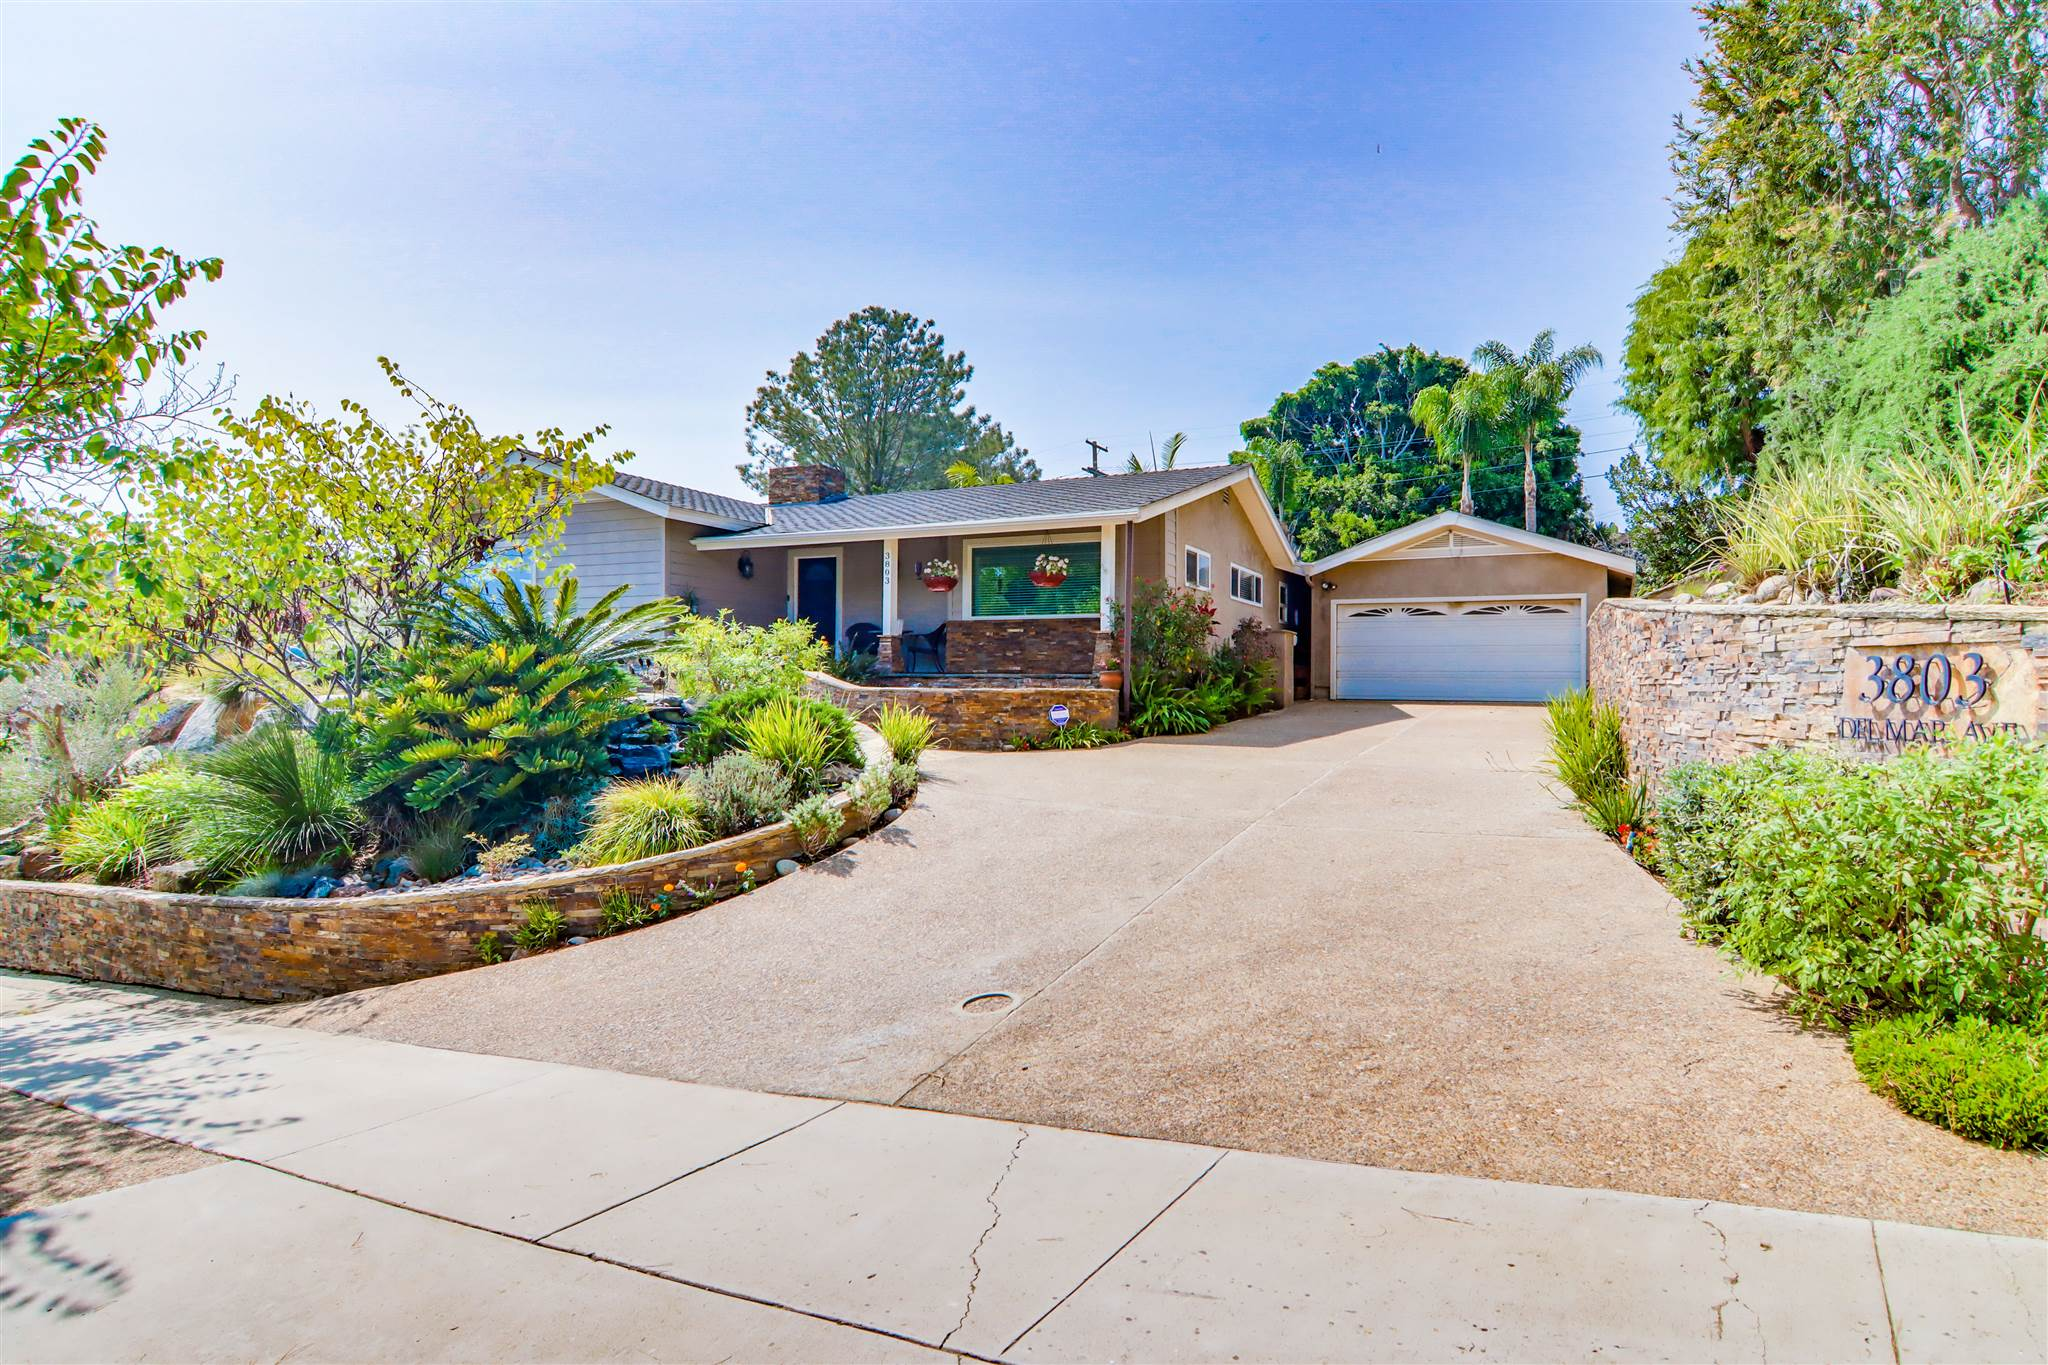 Pride of Ownership!!! Secluded 3+BR, 3.5 BA Freetridge single level home with new owned solar system. As you walk up to the entry you are welcomed by a freshwater pond with Koi fish and soothing waterfalls. Welcome to your open concept home with dbl fireplace and large chef's kitchen with SS appliances, spacious Mahogany cabinets and dual pane windows throughout. The home boasts inside/outside living at its finest with SS BBQ close by, a beautiful pool with Baja Shelf and outdoor shower for all to enjoy.OPPORTUNITY KNOCKS!!! First time on the market in almost 20 years. This is an excellent location and close to everything! Literally minutes from the San Diego International Airport and downtown, you can walk to Sunset Cliffs, the San Diego Bay, Point Loma Village, the historic La Playa Trail and many world known Yacht Clubs. Close to many grocery stores, PL Little League, concerts in The Park and many great public schools, the children won't have to walk far due to the central location. Incredible features including new solar, an oasis like pool and outdoor area, stainless steal BBQ, double fireplace, soft water throughout, and a spacious walk-in closet in the master bed.